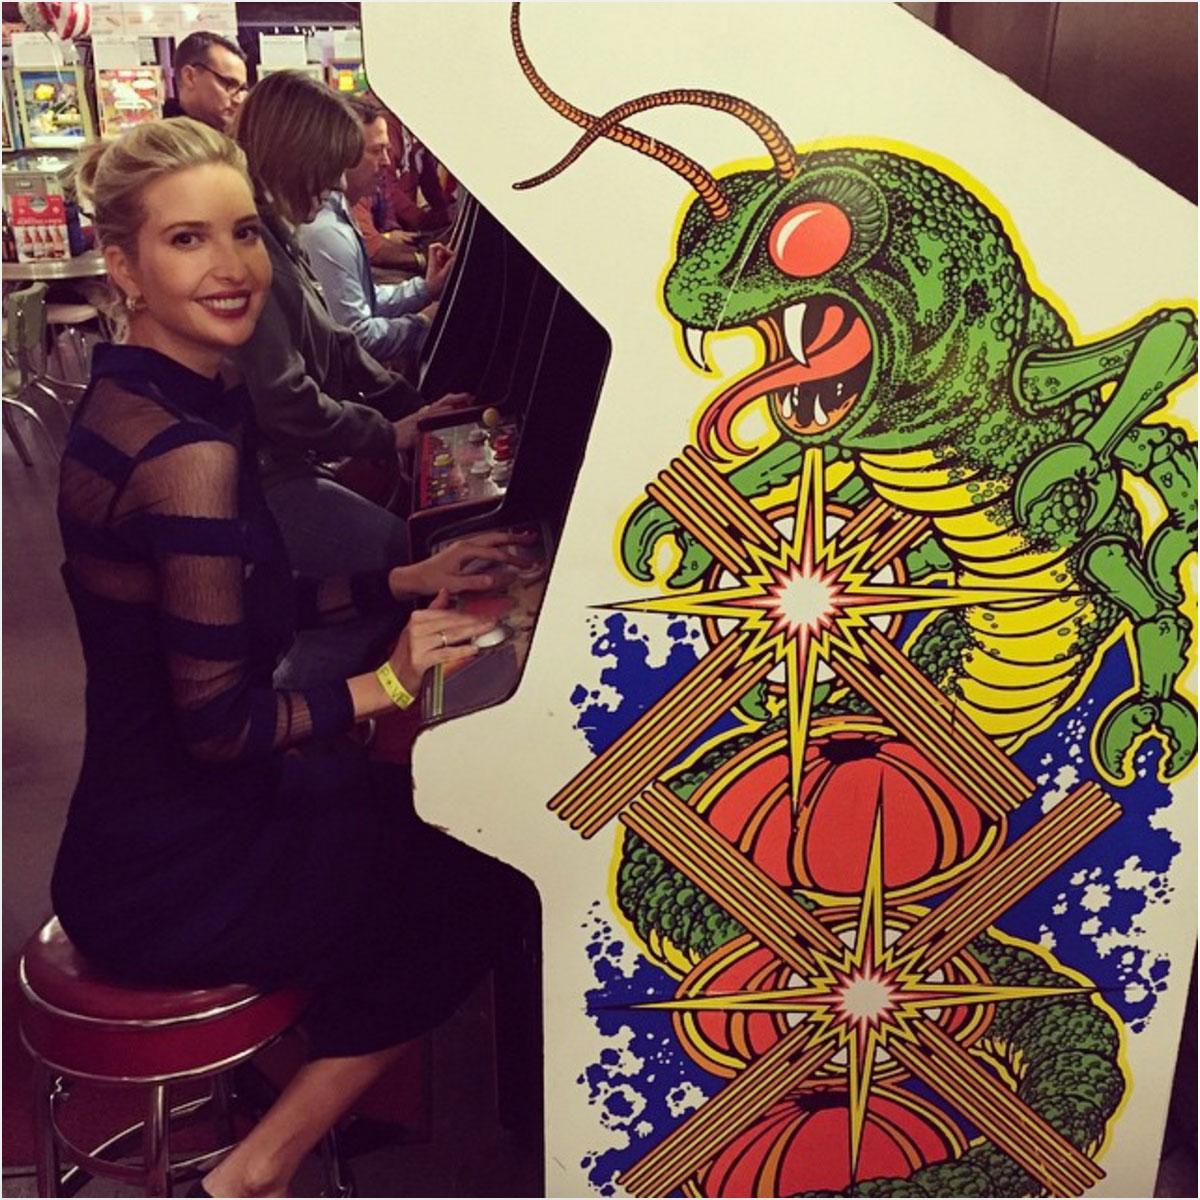 Ivanka Trump playing Centipede in an Asbury Park arcade